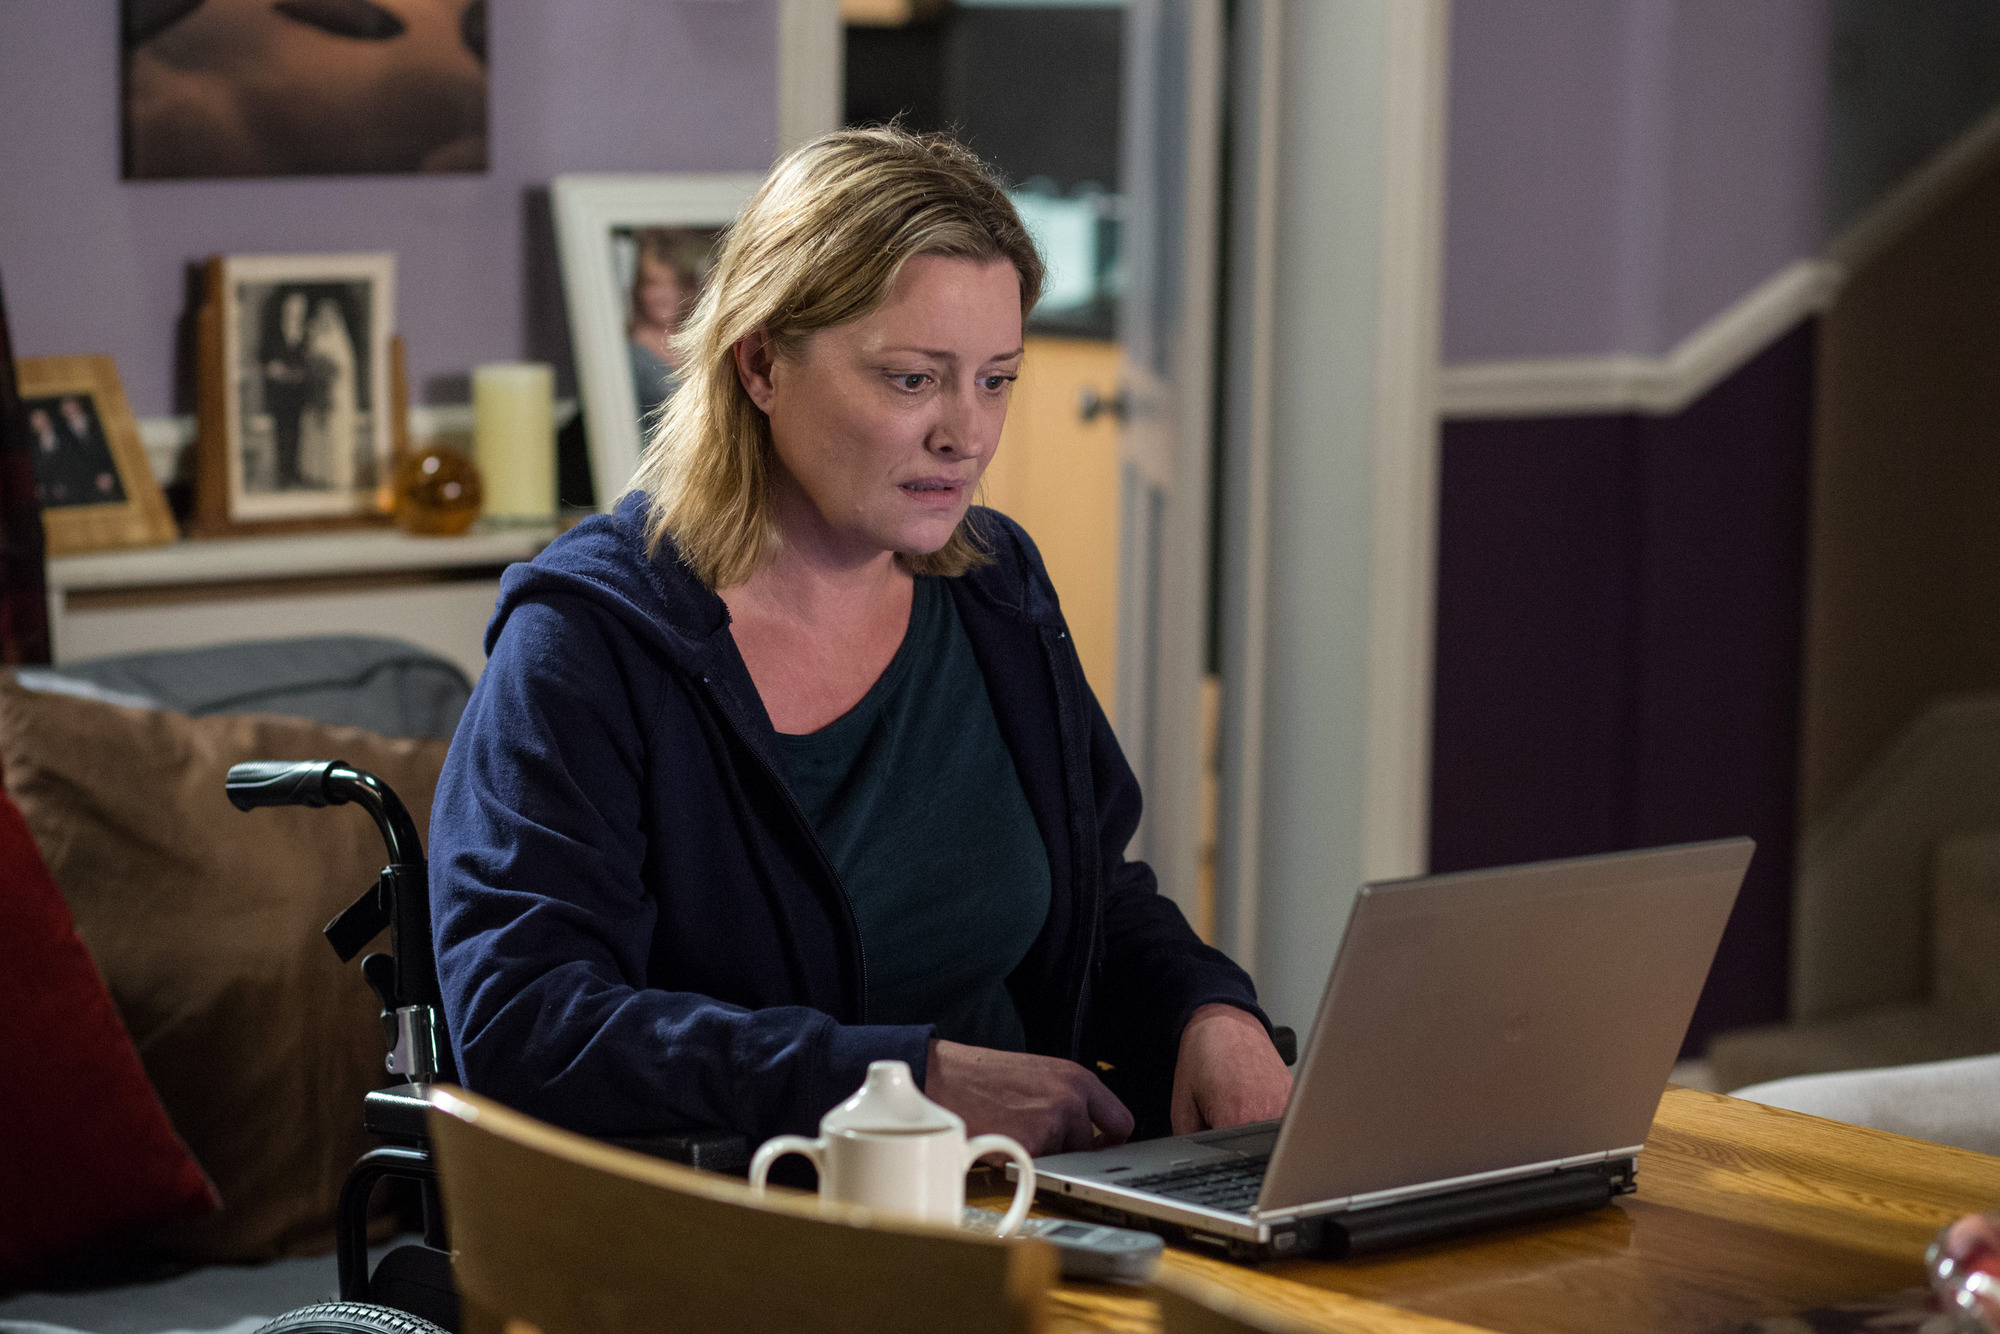 WARNING: Embargoed for publication until 00:00:01 on 16/08/2016 - Programme Name: EastEnders - July - September 2016 - TX: 25/08/2016 - Episode: EastEnders July - September  2016 - 5339 (No. n/a) - Picture Shows: *STRICTLY NOT FOR PUBLICATION UNTIL 00:01HRS, TUESDAY 16th AUGUST, 2016* ***FORTNIGHTLIES PLEASE DO NOT USE (SOAP LIFE AND ALL ABOUT SOAP) Jane makes a shocking disocvery. Jane Beale (LAURIE BRETT) - (C) BBC - Photographer: Jack Barnes